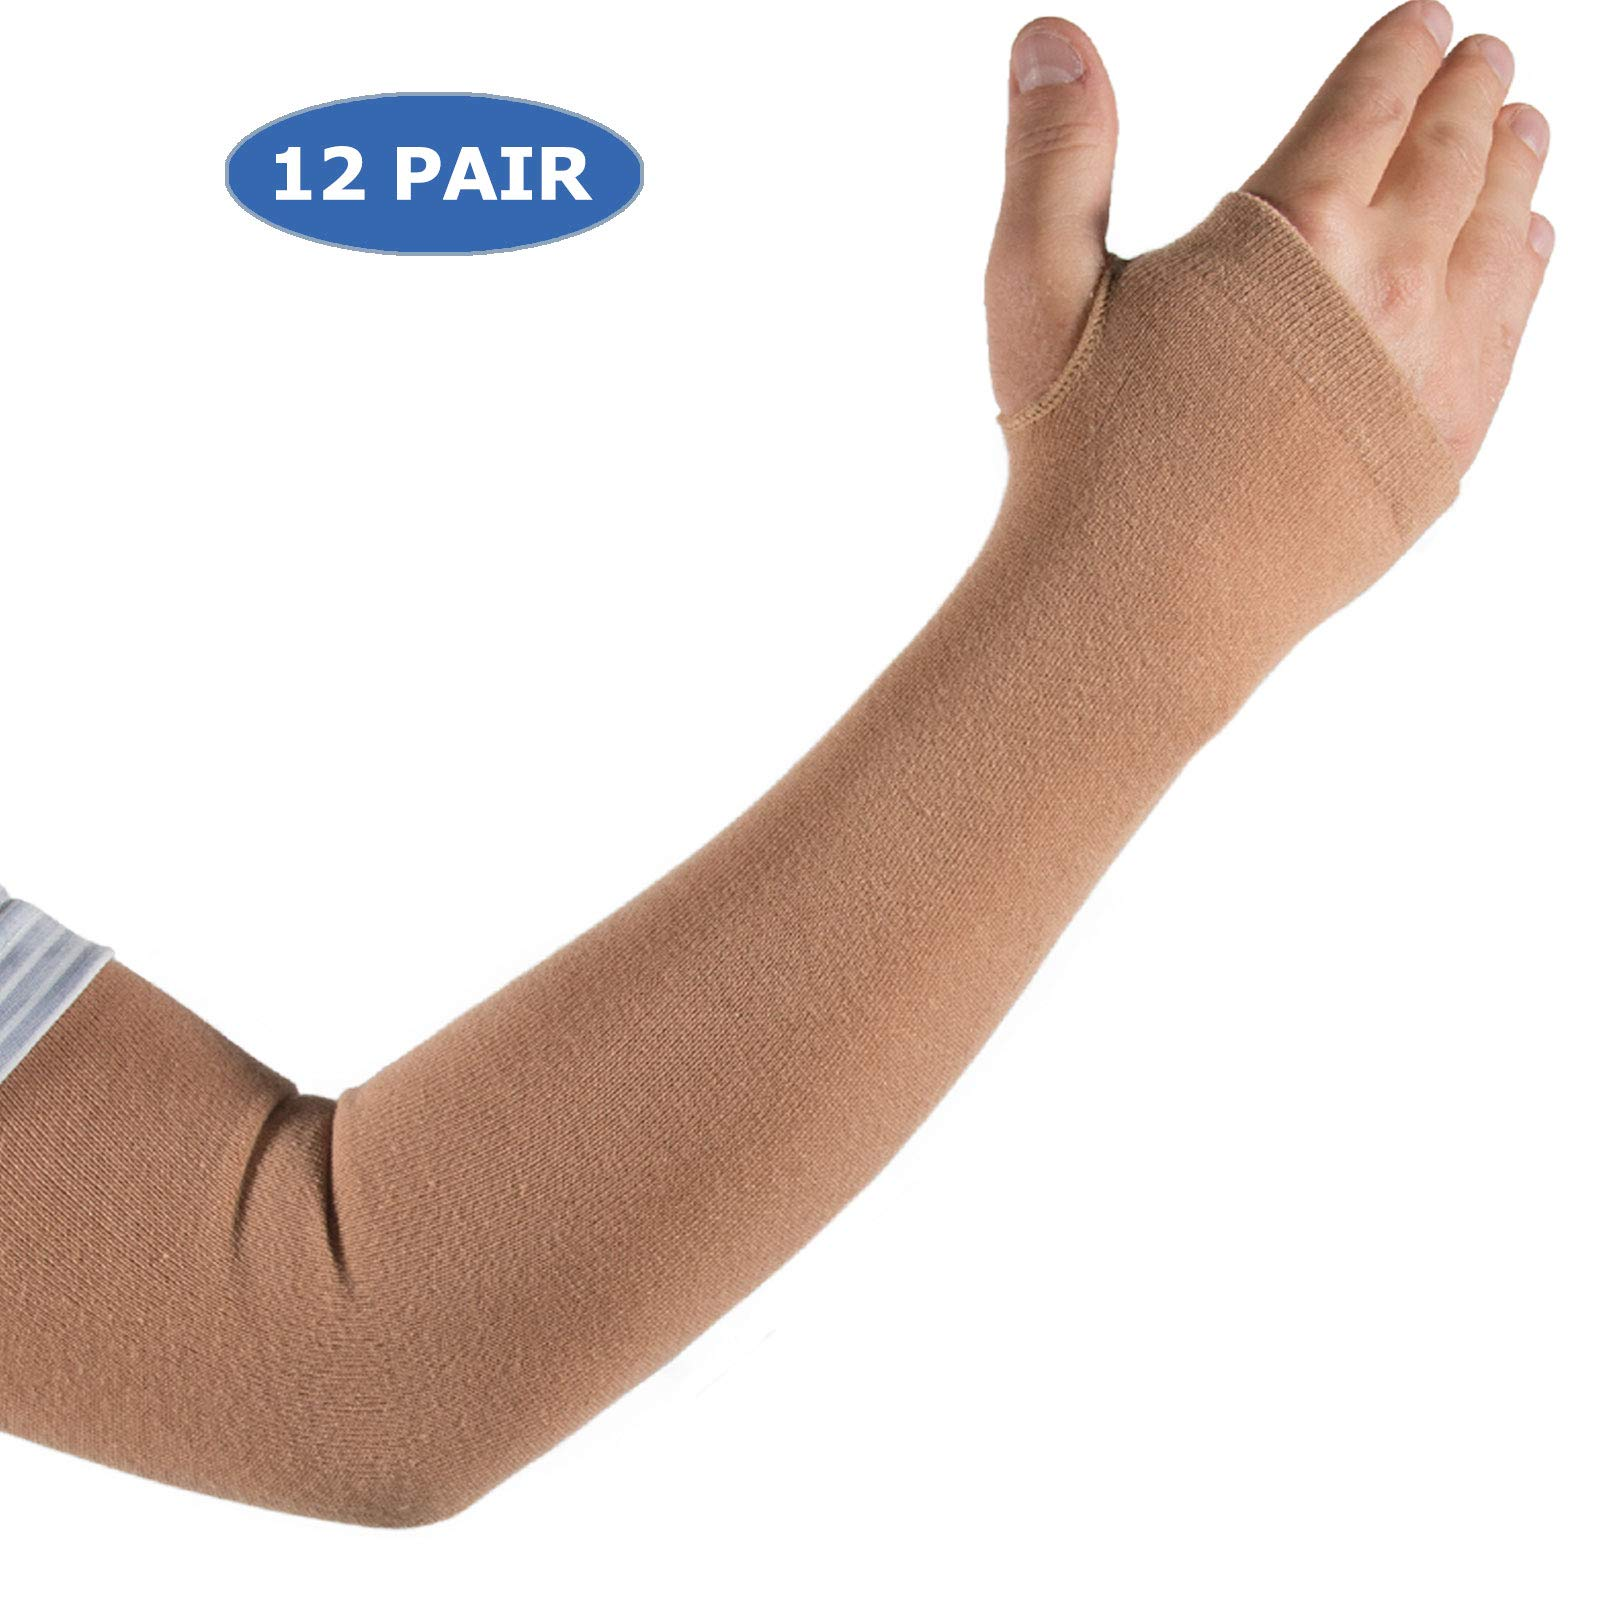 Skin Protection Arm Sleeves for Men & Women | Protect Sensitive Arm and Hand Skin Against Tears, Bruising and Sun Exposure (Available in 4 Sizes and 1, 2 & 12 Pair Packs)